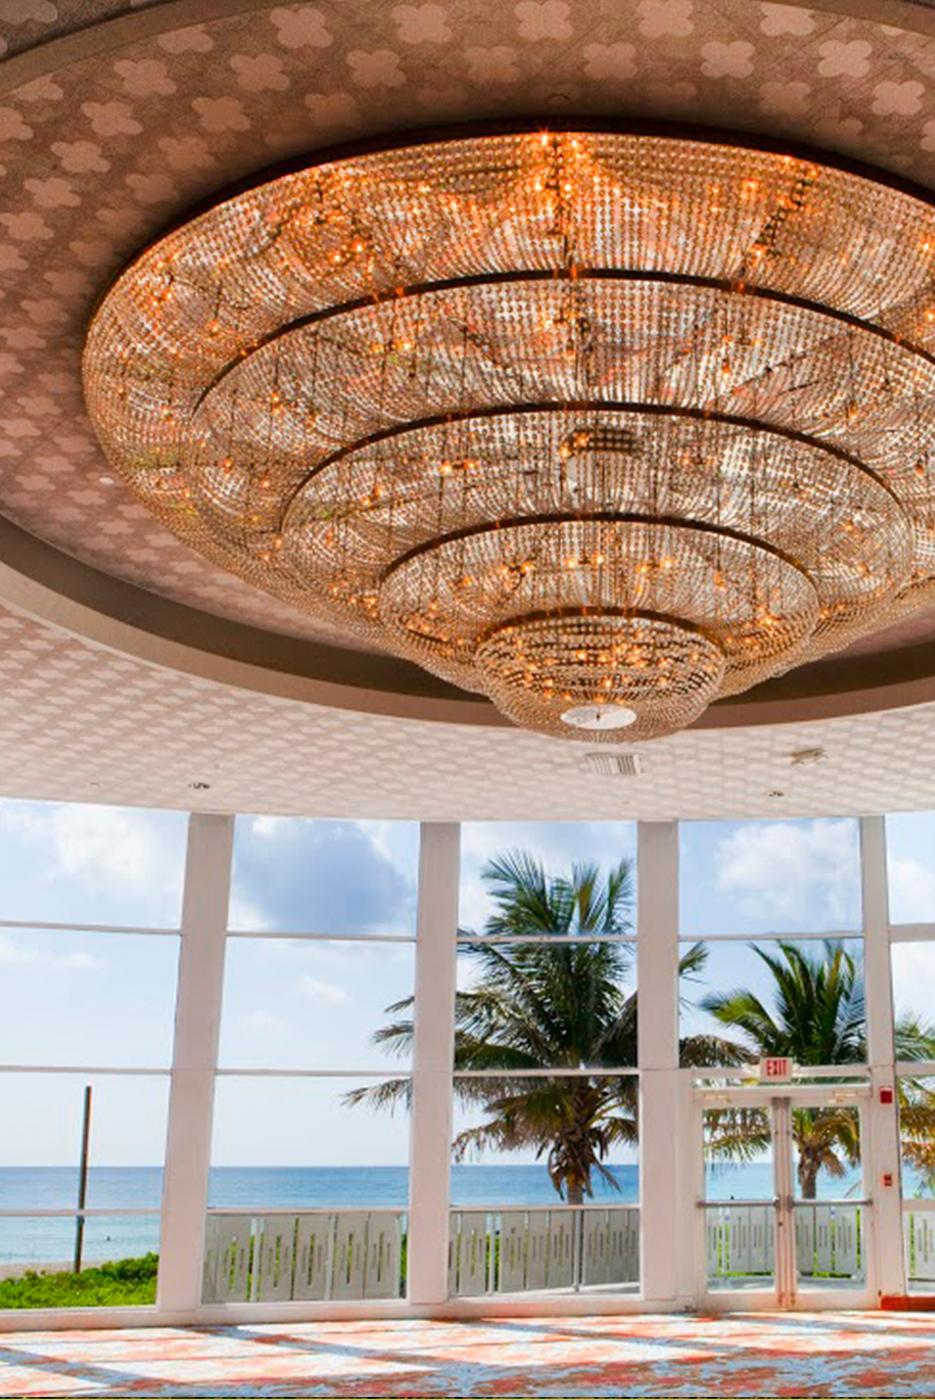 Chandelier at the Deauville Beach Resort